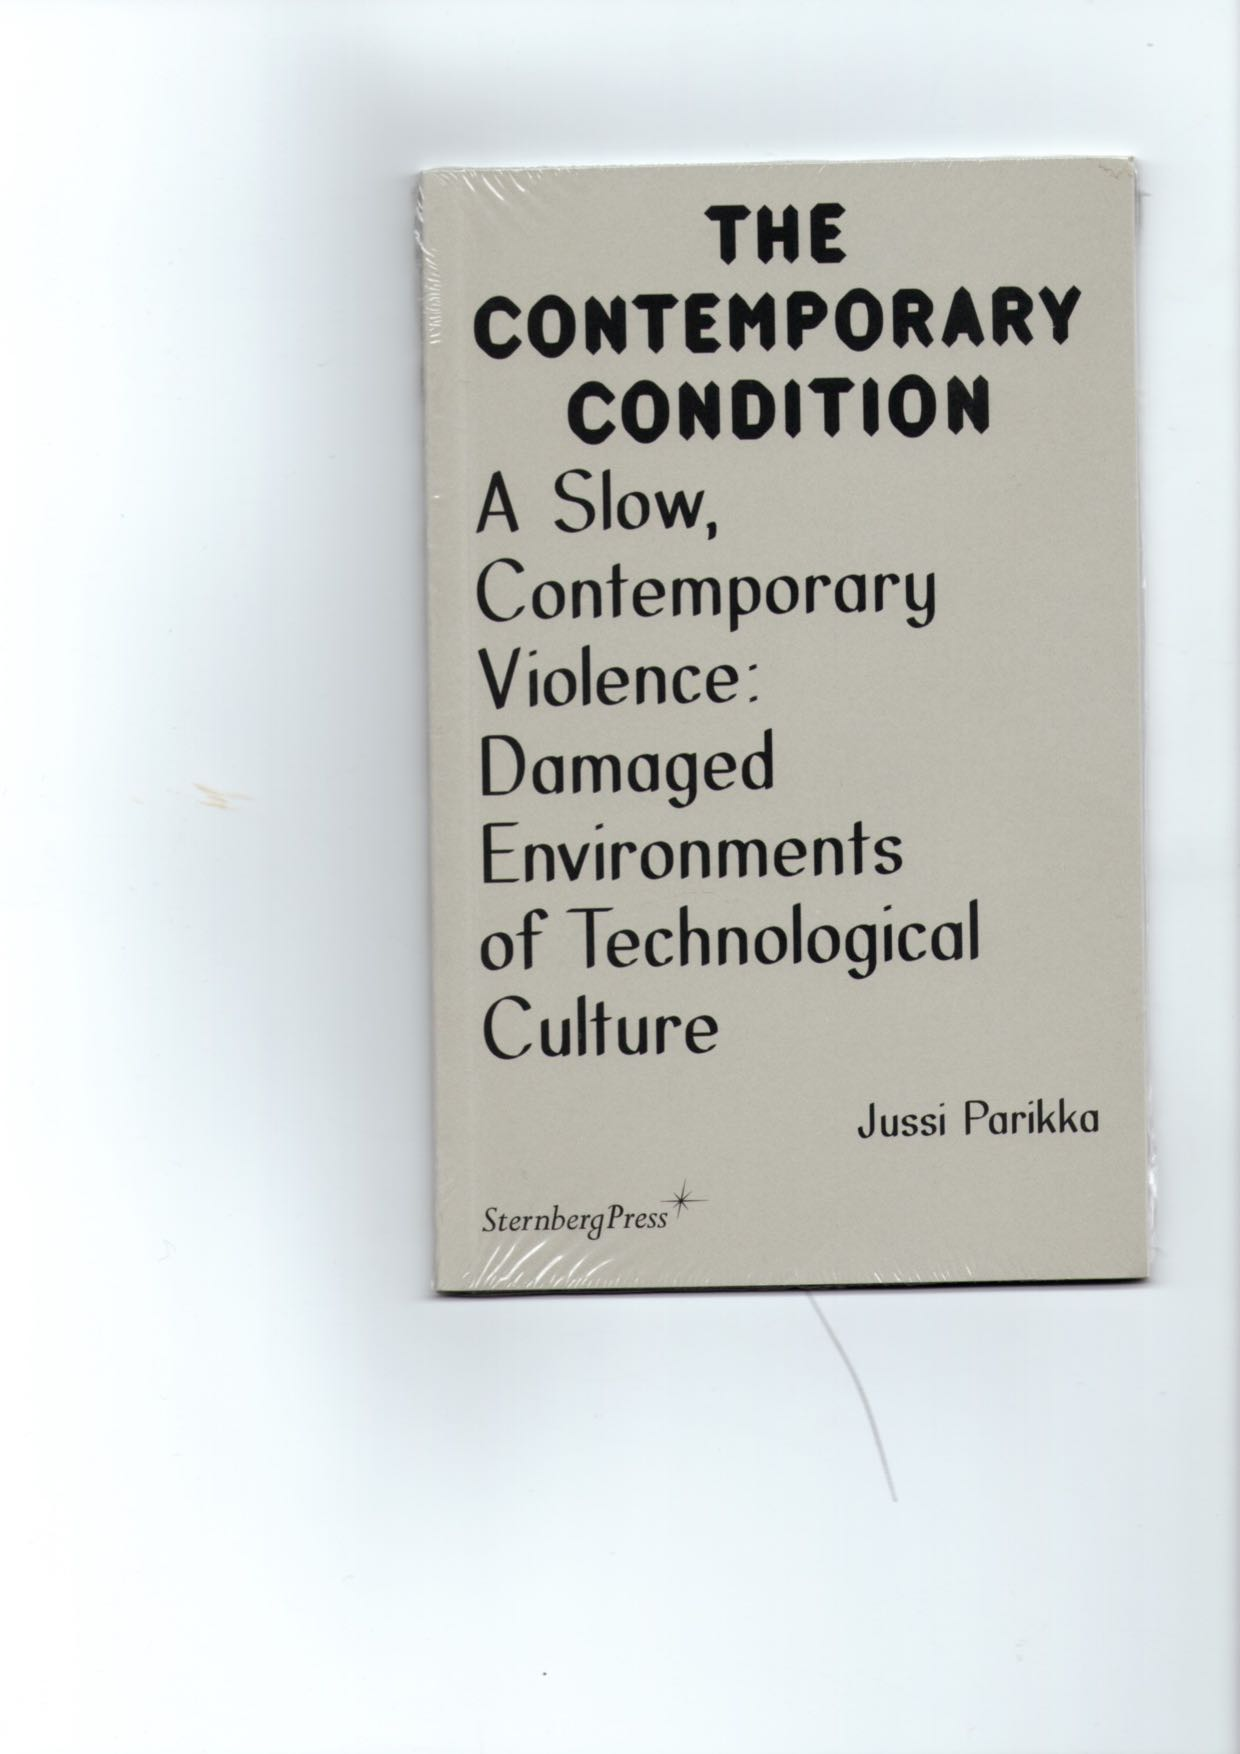 PARIKKA, Jussi - The Contemporary Condition. A Slow, Contemporary Violence: Damaged Environments of Technological Culture